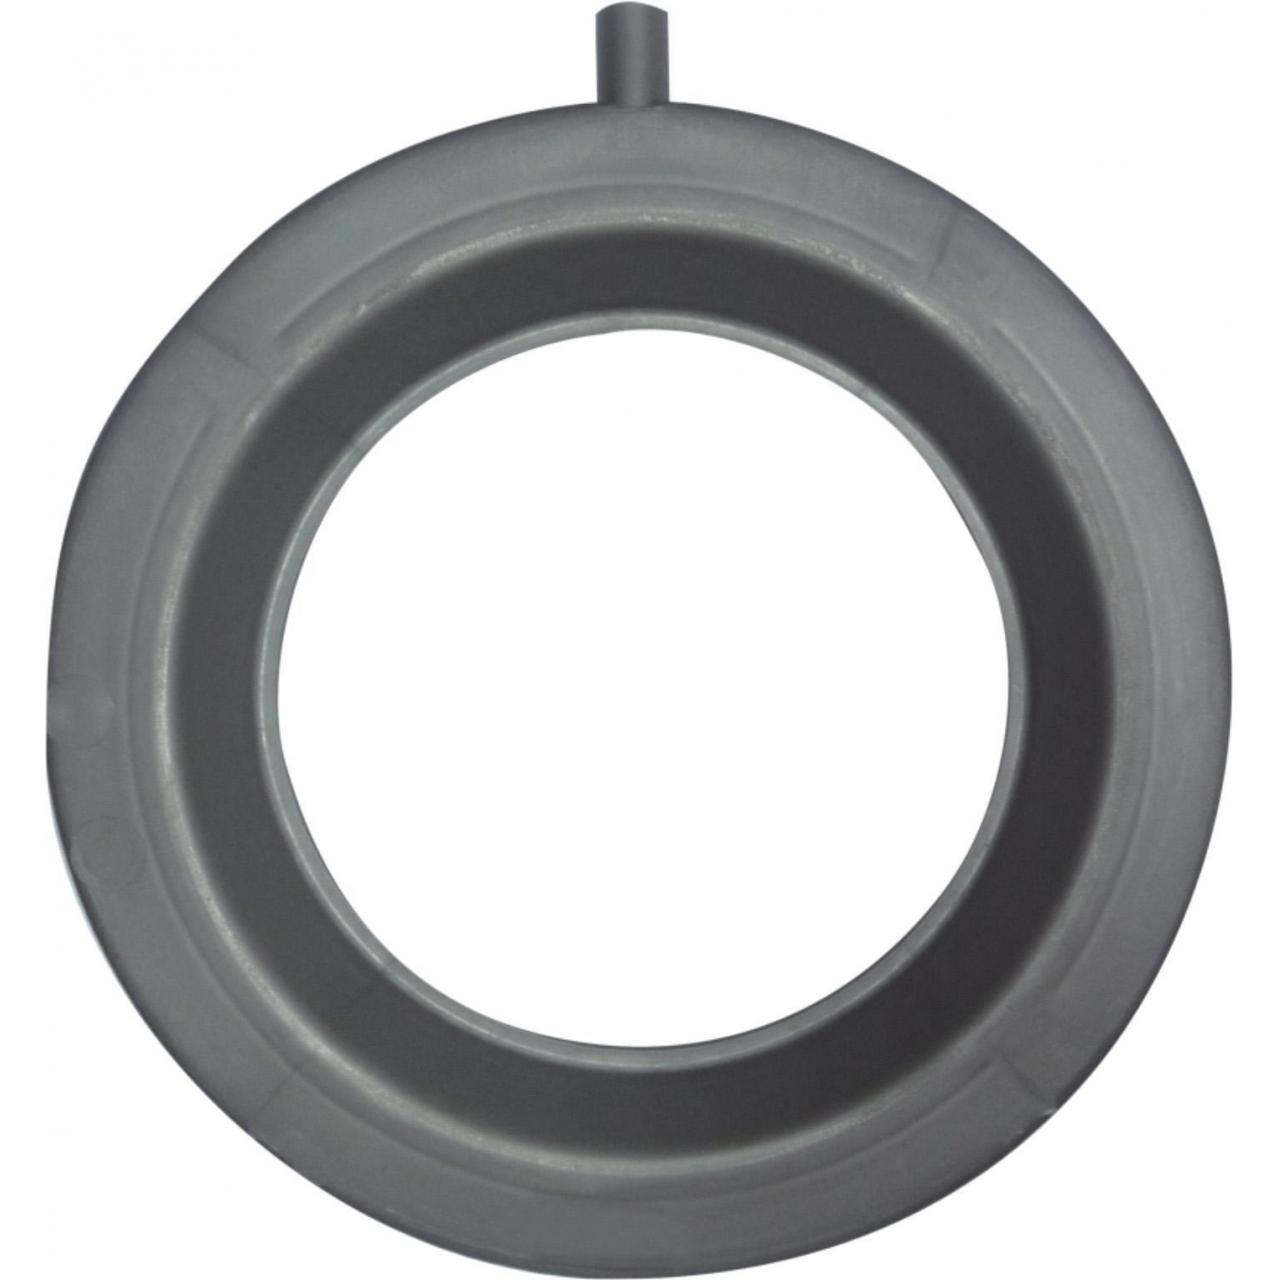 Oil guide plate series 240-Side holes / Gray